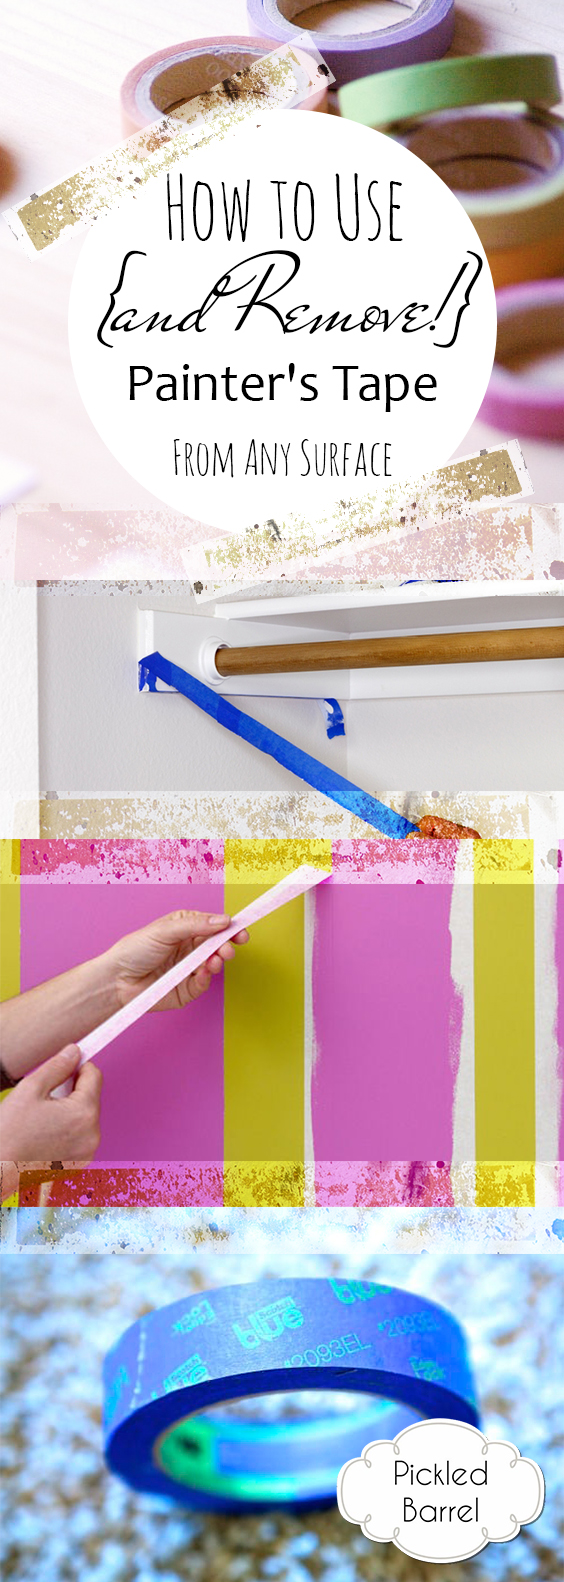 How to Use {and Remove!} Painter's Tape From Any Surface| How to Remove Painters Tape, Removing Painters Tape from Any Surface, DIY Home, Home DIY Projects, Tips and Tricks for the Home, Home Remodeling Tips and Tricks, Popular Pin